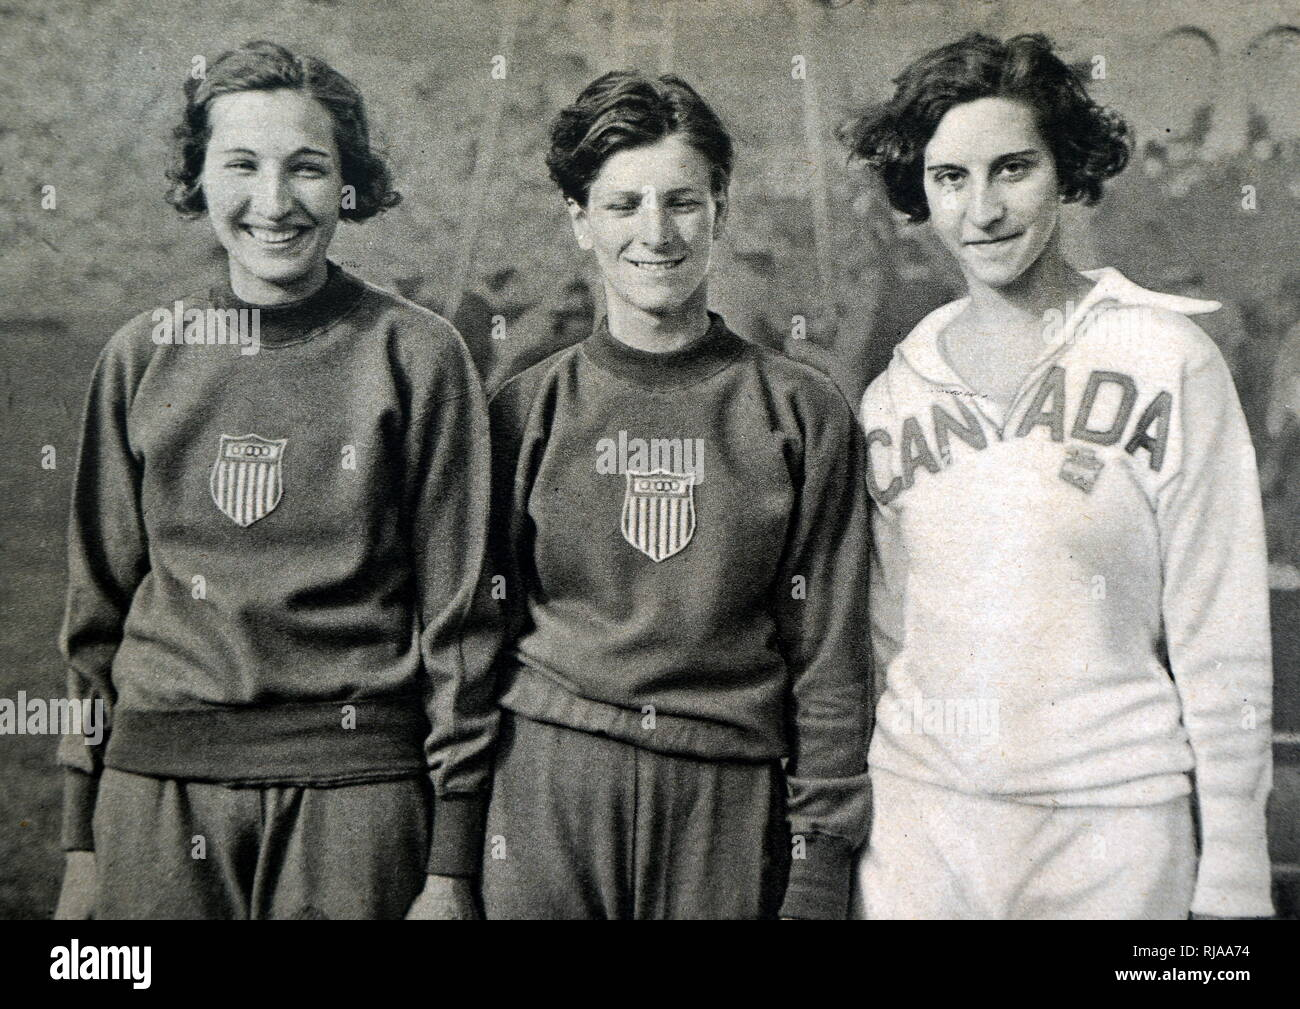 Photograph of the High jump medalists at the 1932 Olympic games. (left to right) Jean Shiley (1911- 1998) took gold for the USA. Mildred Ella 'Babe' Didrikson Zaharias (1911 - 1956) took silver for the USA. Eva Dawes (1912 - 2009) took bronze for Canada. - Stock Image